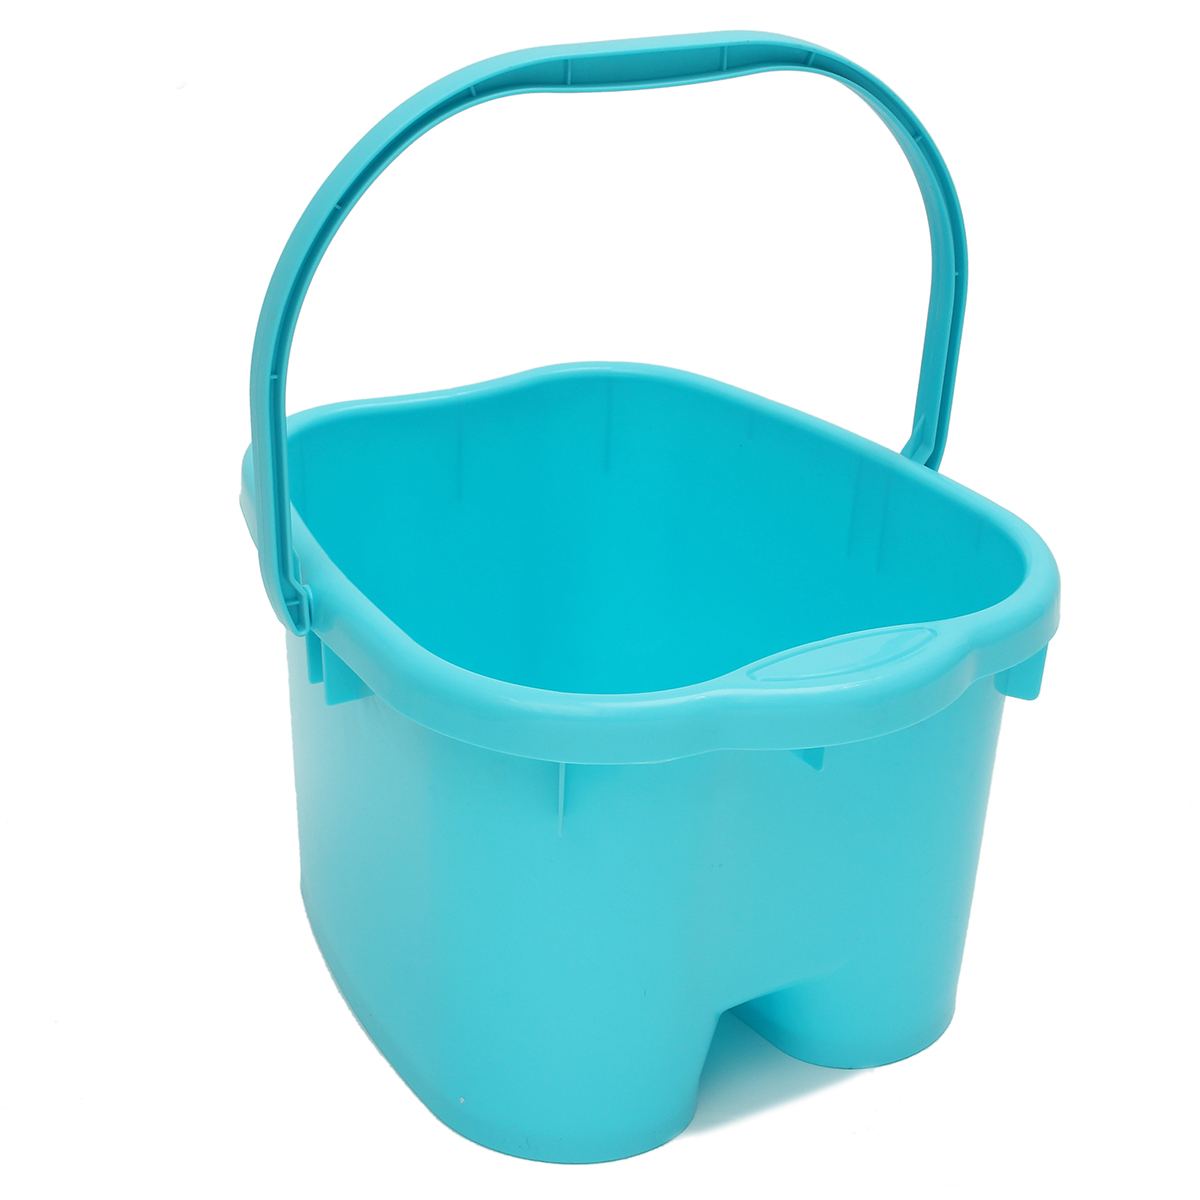 Blue Foot Soaking Water Bucket Basin Tub. Bath, Detox, Soak,